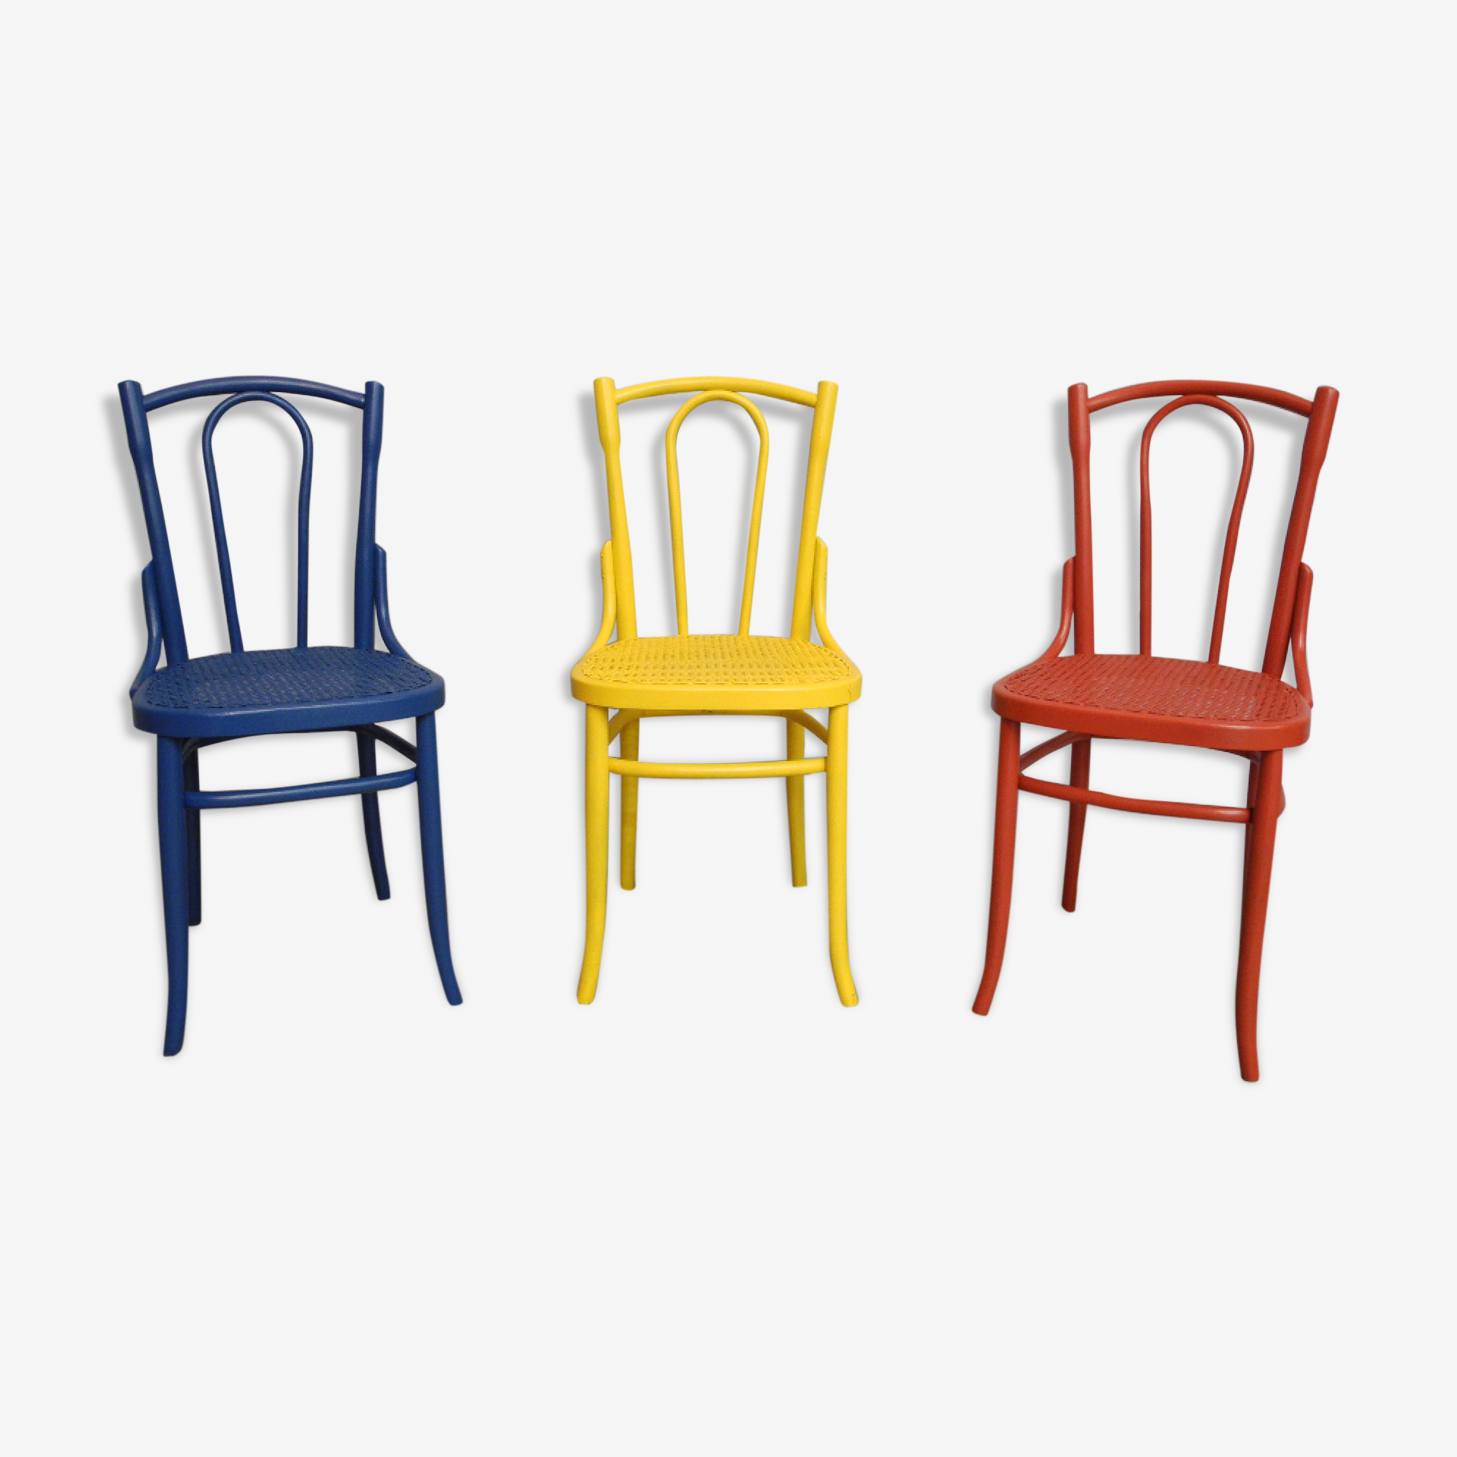 Set of 3 old Japy Frères wooden chairs from 1940/1950